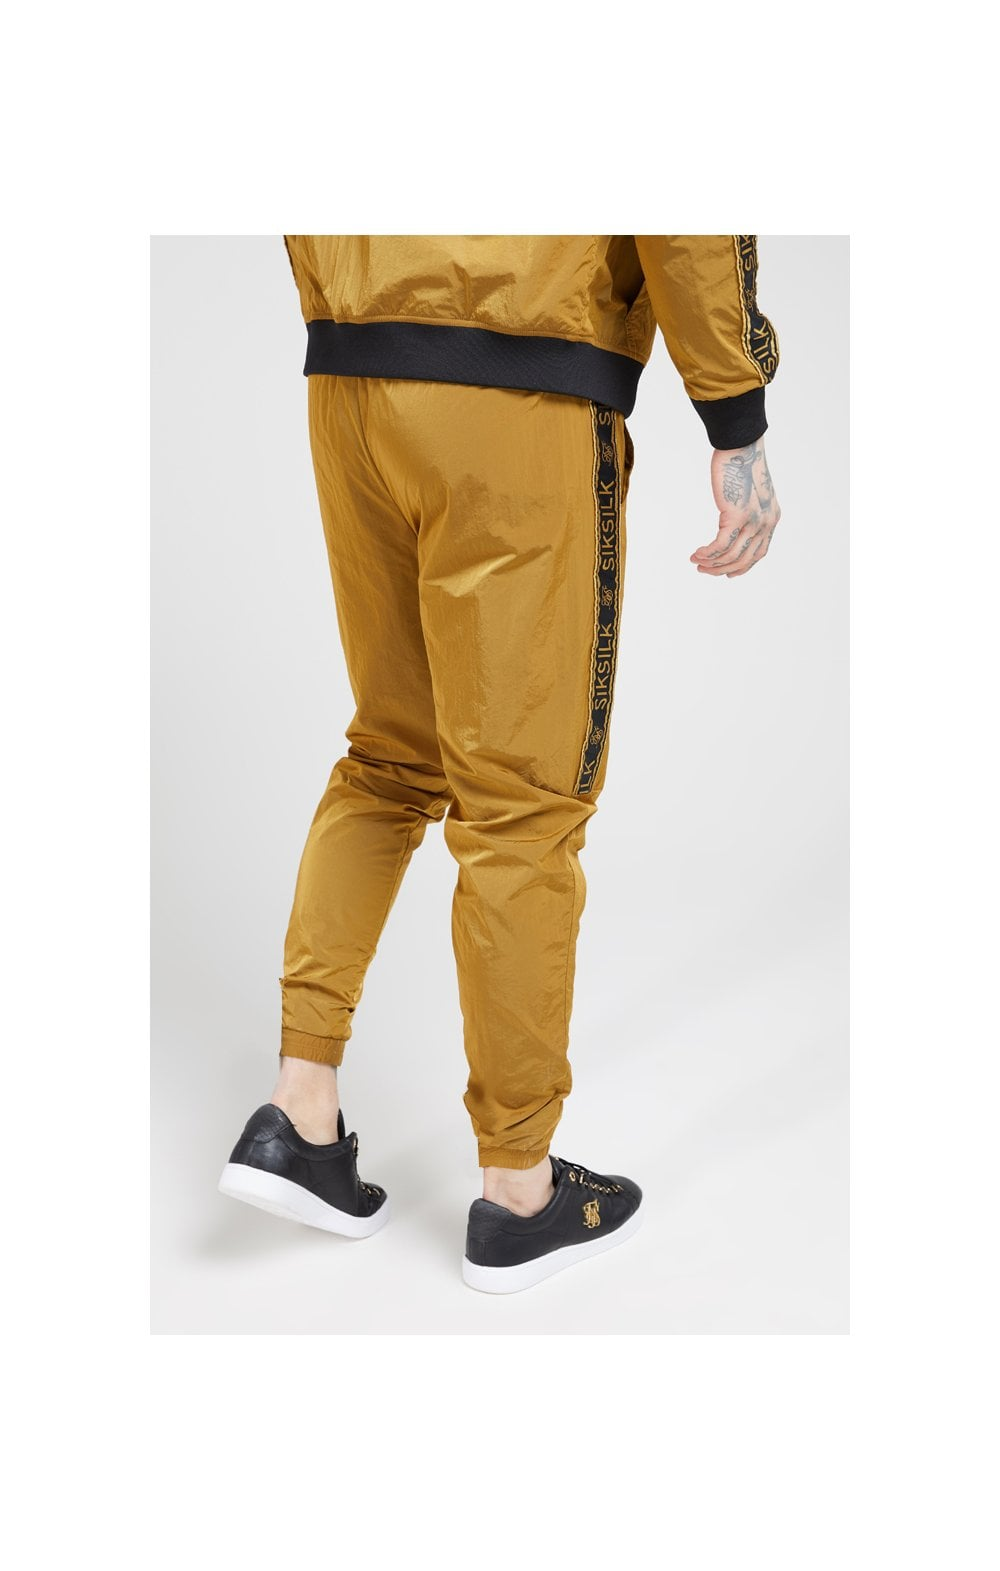 Load image into Gallery viewer, SikSilk Crushed Nylon Taped Joggers – Golden Mustard (3)